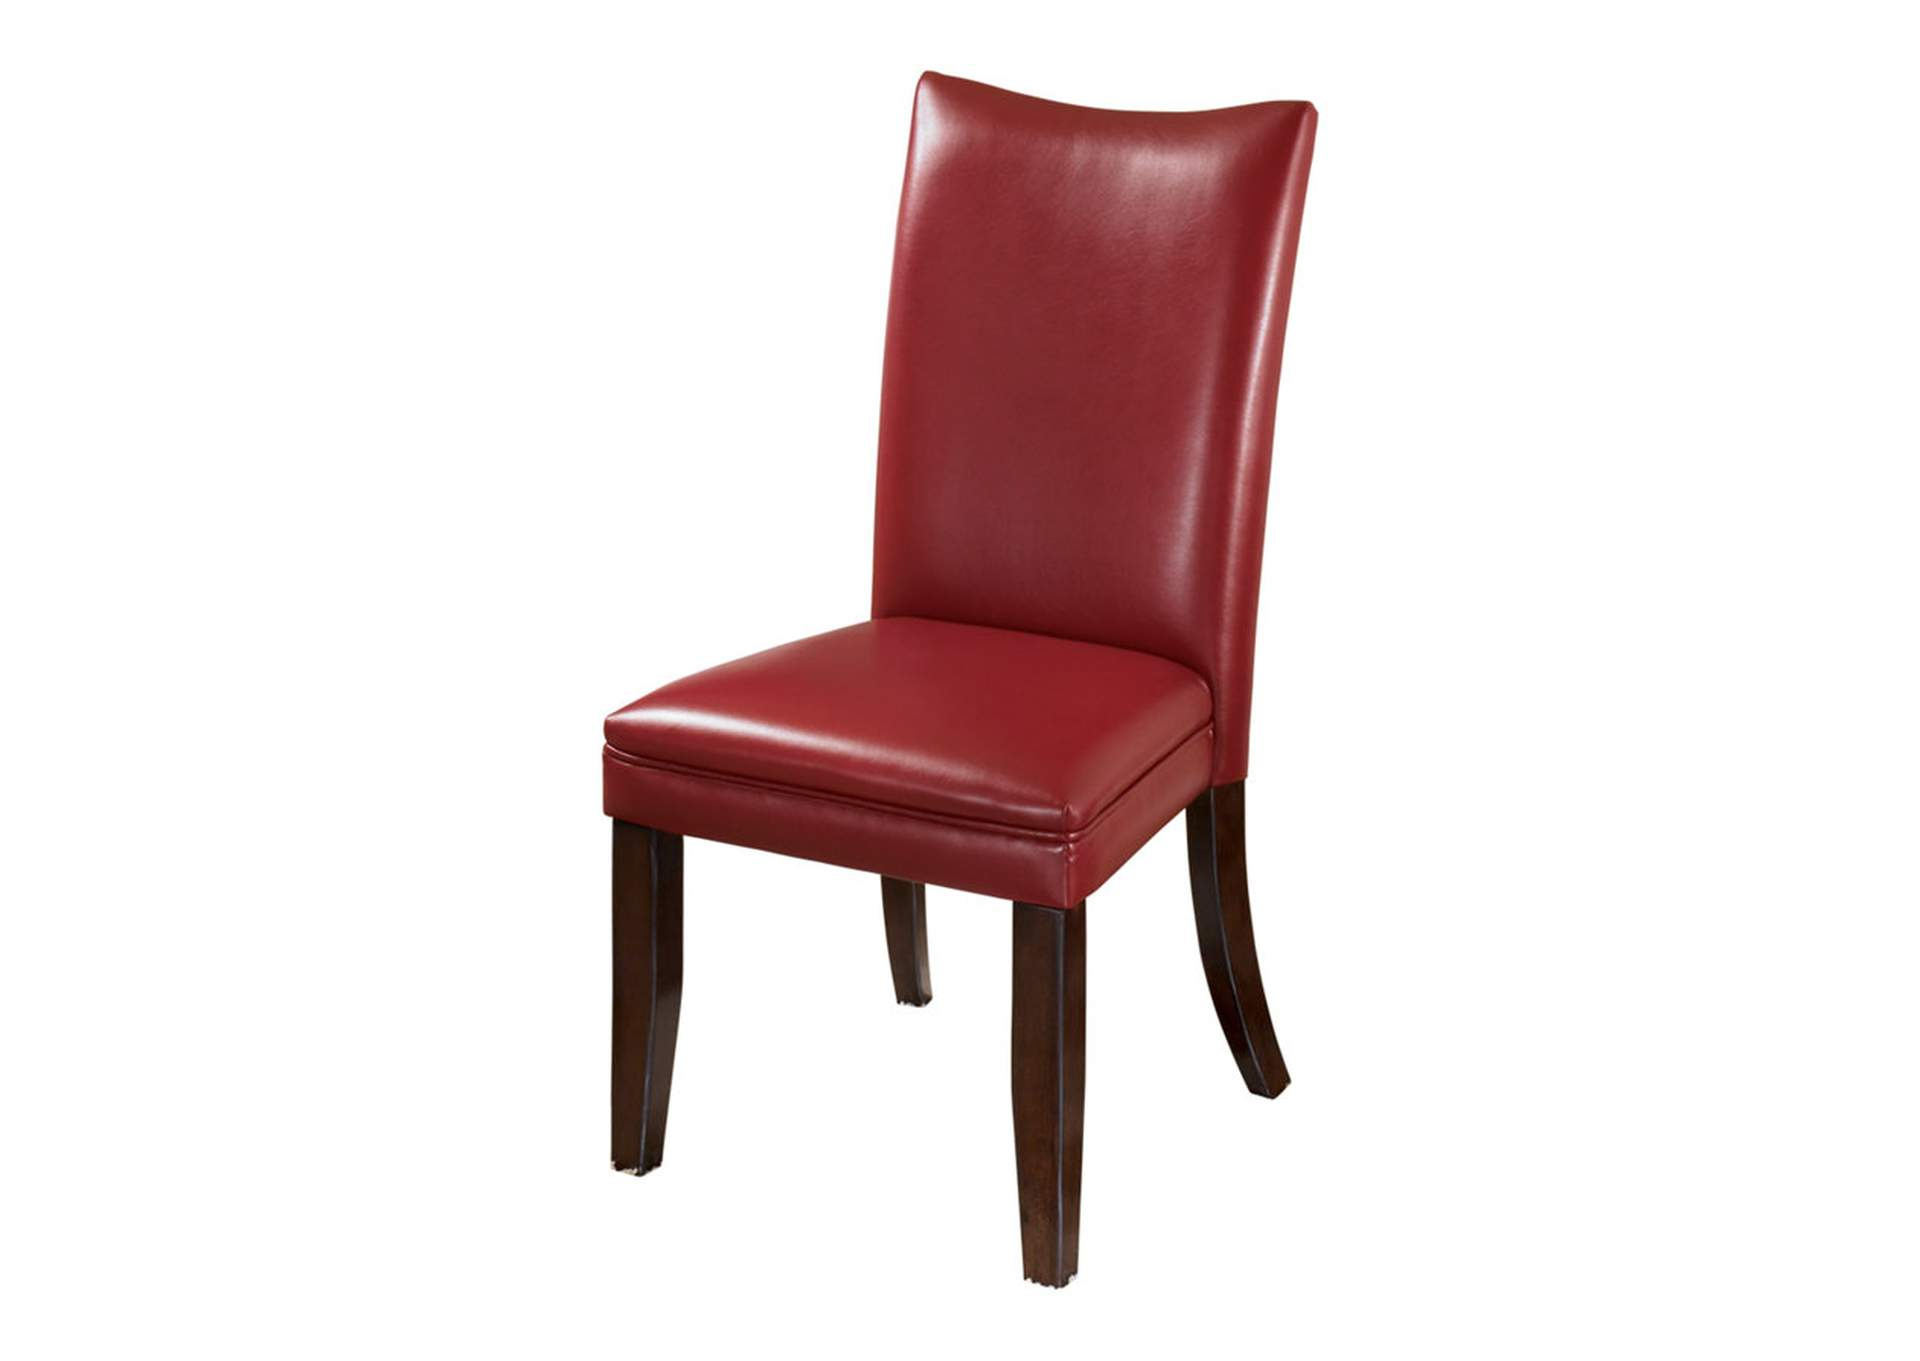 Fabulous Johnsons Furniture Charrell Red Side Chairs Set Of 2 Machost Co Dining Chair Design Ideas Machostcouk